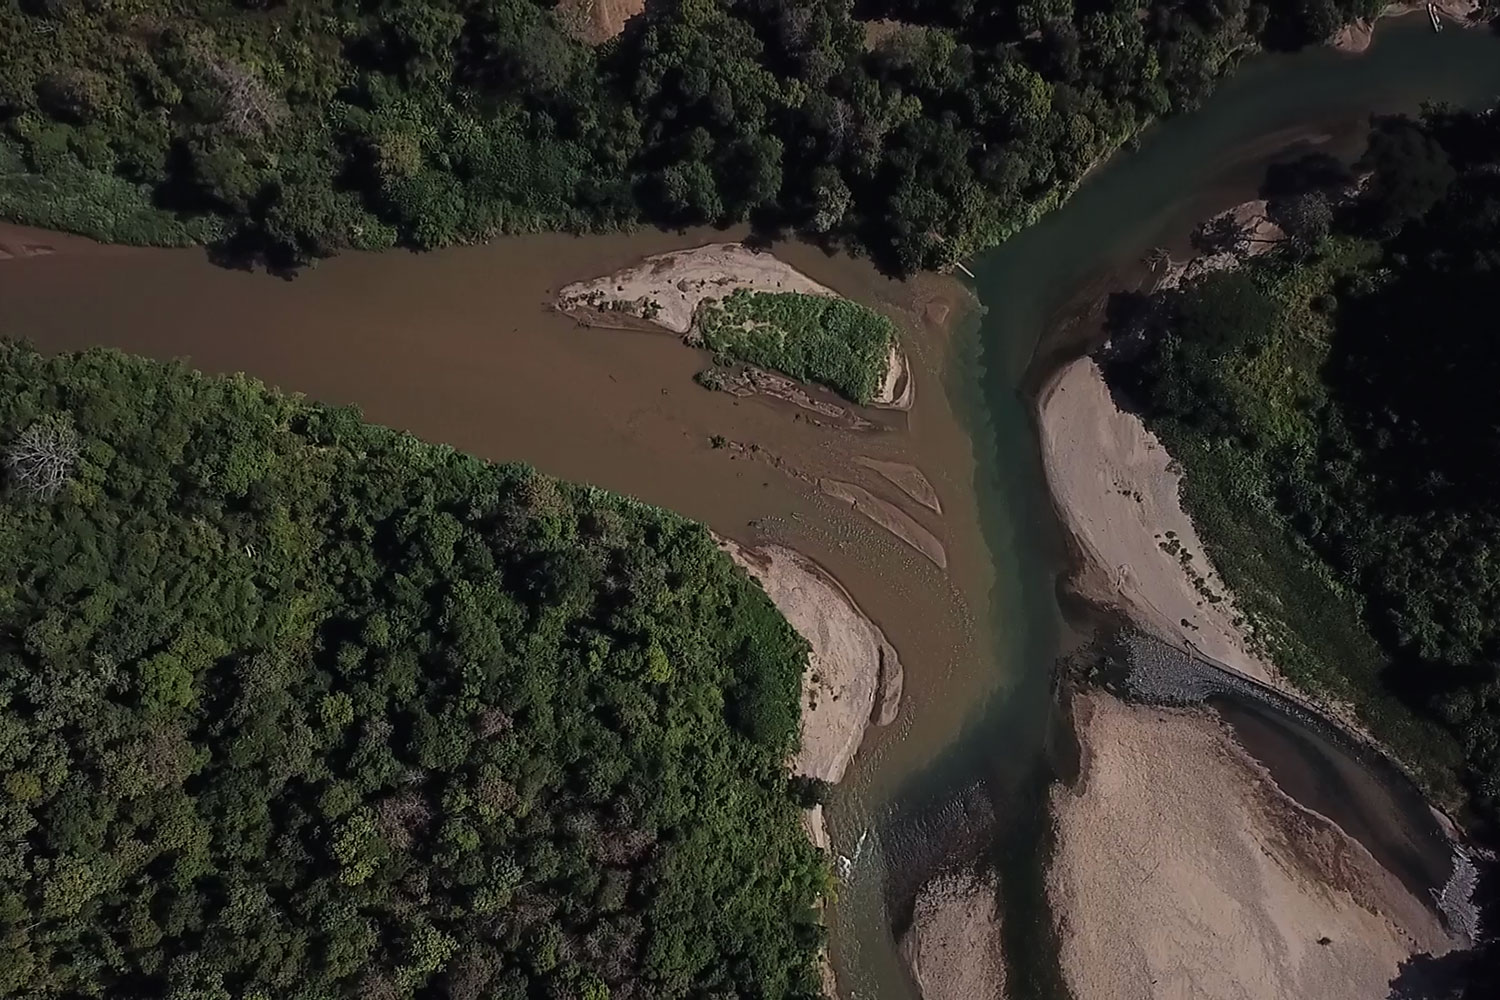 An aerial photo shows the meeting point between the Ngao River and the Yuam River, locally known as the two-coloured river. The area has been included as part of the Yuam Water Diversion Project, a scheme to increase the water supply in Bhumibol dam.(Photo: Transbordernews)